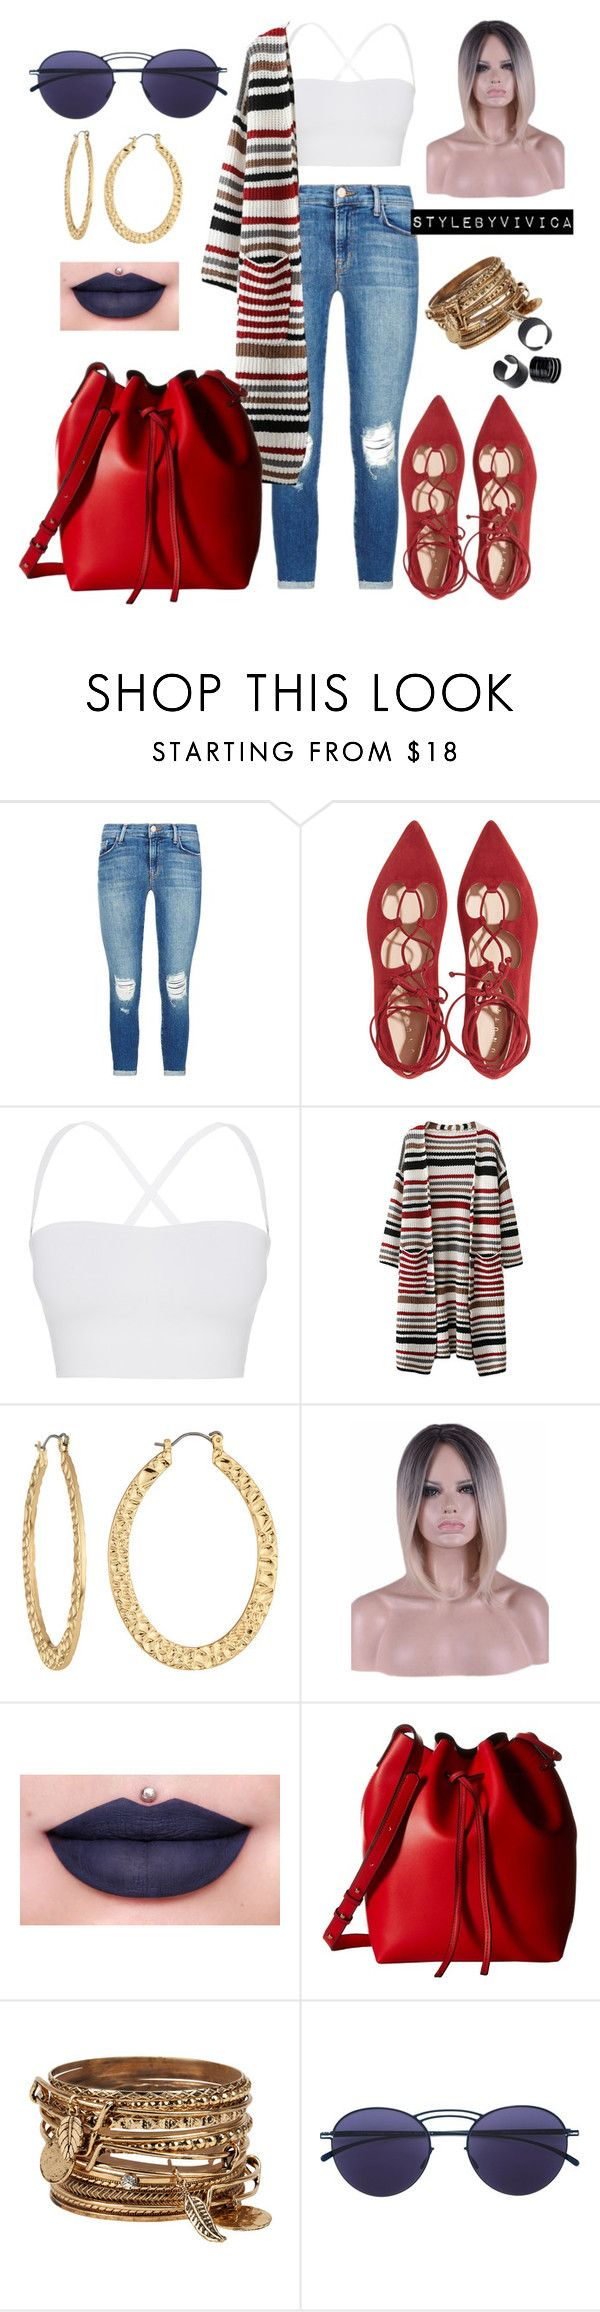 """""""Chill Sunday:Your Place or Mine?"""" by stylebyvivica ❤ liked on Polyvore featuring J Brand, Theory, Fragments, Jeffree Star, Gabriella Rocha, ALDO and Mykita"""